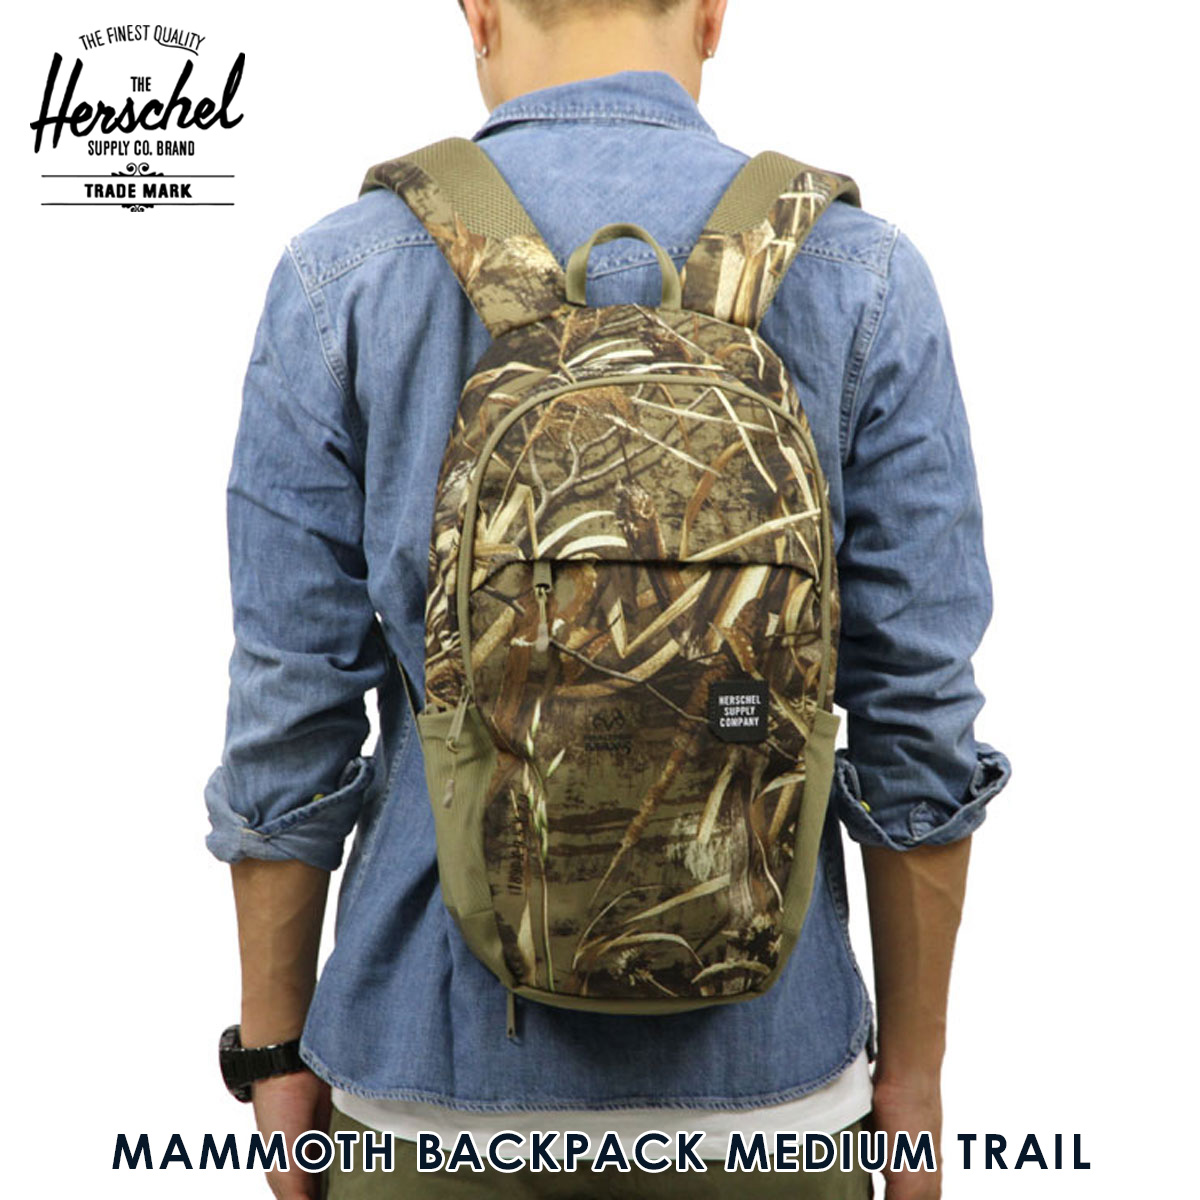 45a7dd3d5b5 Hershel supply Herschel Supply regular store bag MAMMOTH BACKPACK MEDIUM  TRAIL 10269-01454-OS REALTREE D00S15